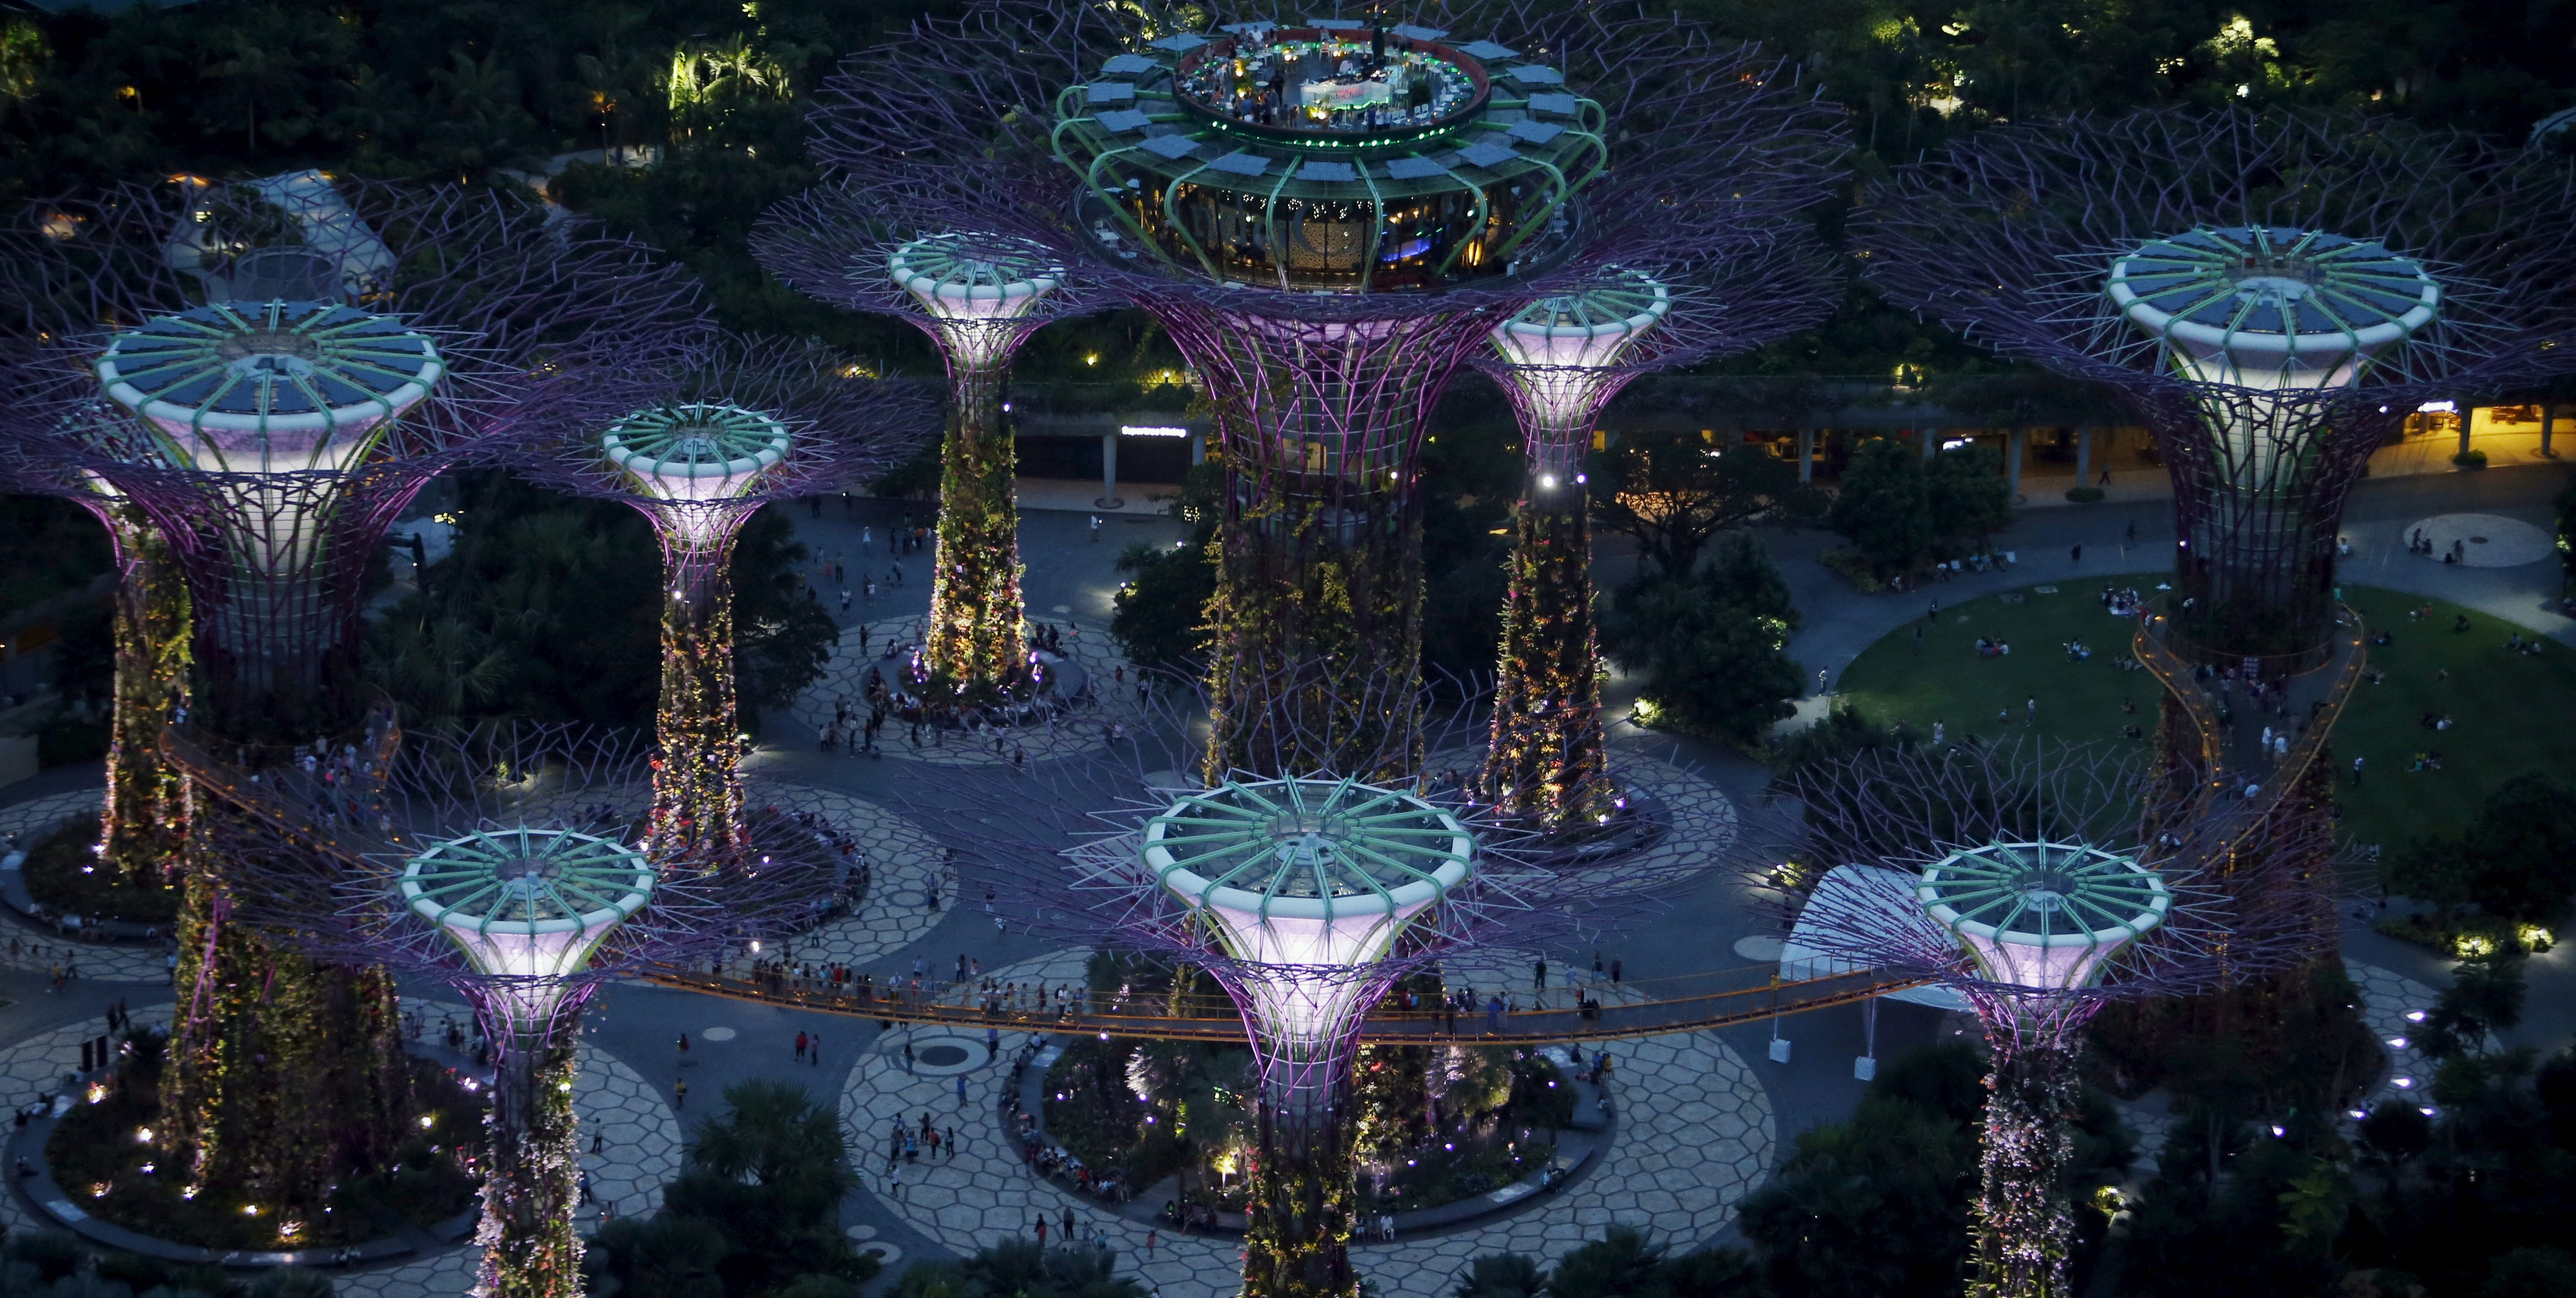 Visitors dine on a rooftop restaurant on top of a Supertree in the Gardens by the Bay, Singapore, July 16, 2015. When Singapore celebrated its 50th birthday as an independent country in August,the city state bore little resemblance to the tiny island nation that was expelled from Malaysia in 1965. Its physical stature has swollen by 20 percent thanks to one of the world's most aggressive land reclamation drives.